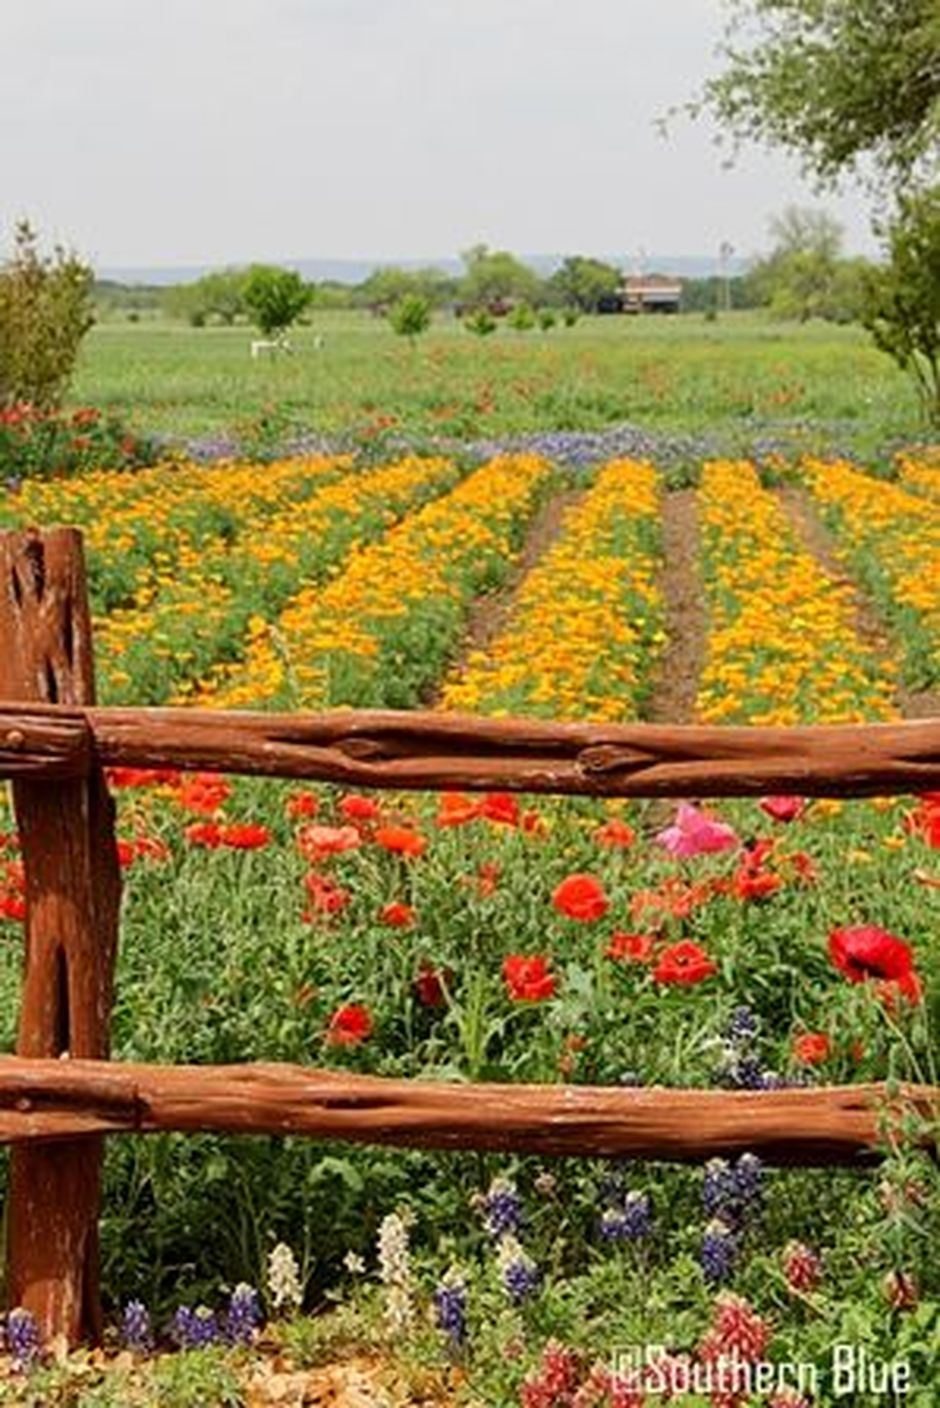 Beauty Flower Farm Which Will Make You Want to Have It 2